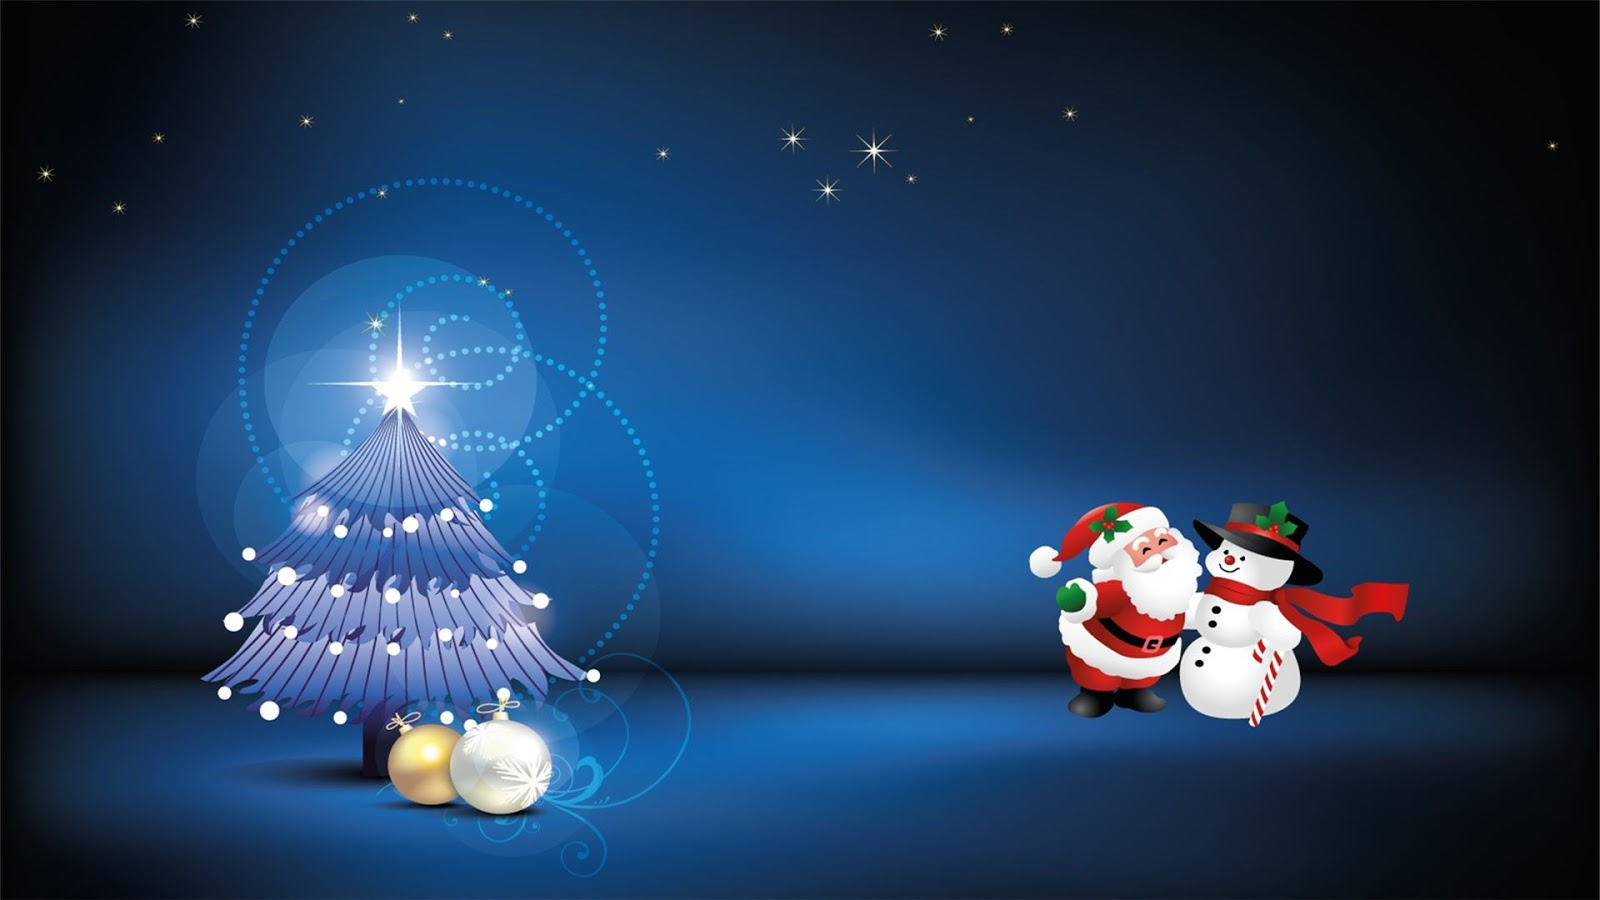 christmas wallpaper download merry - photo #46